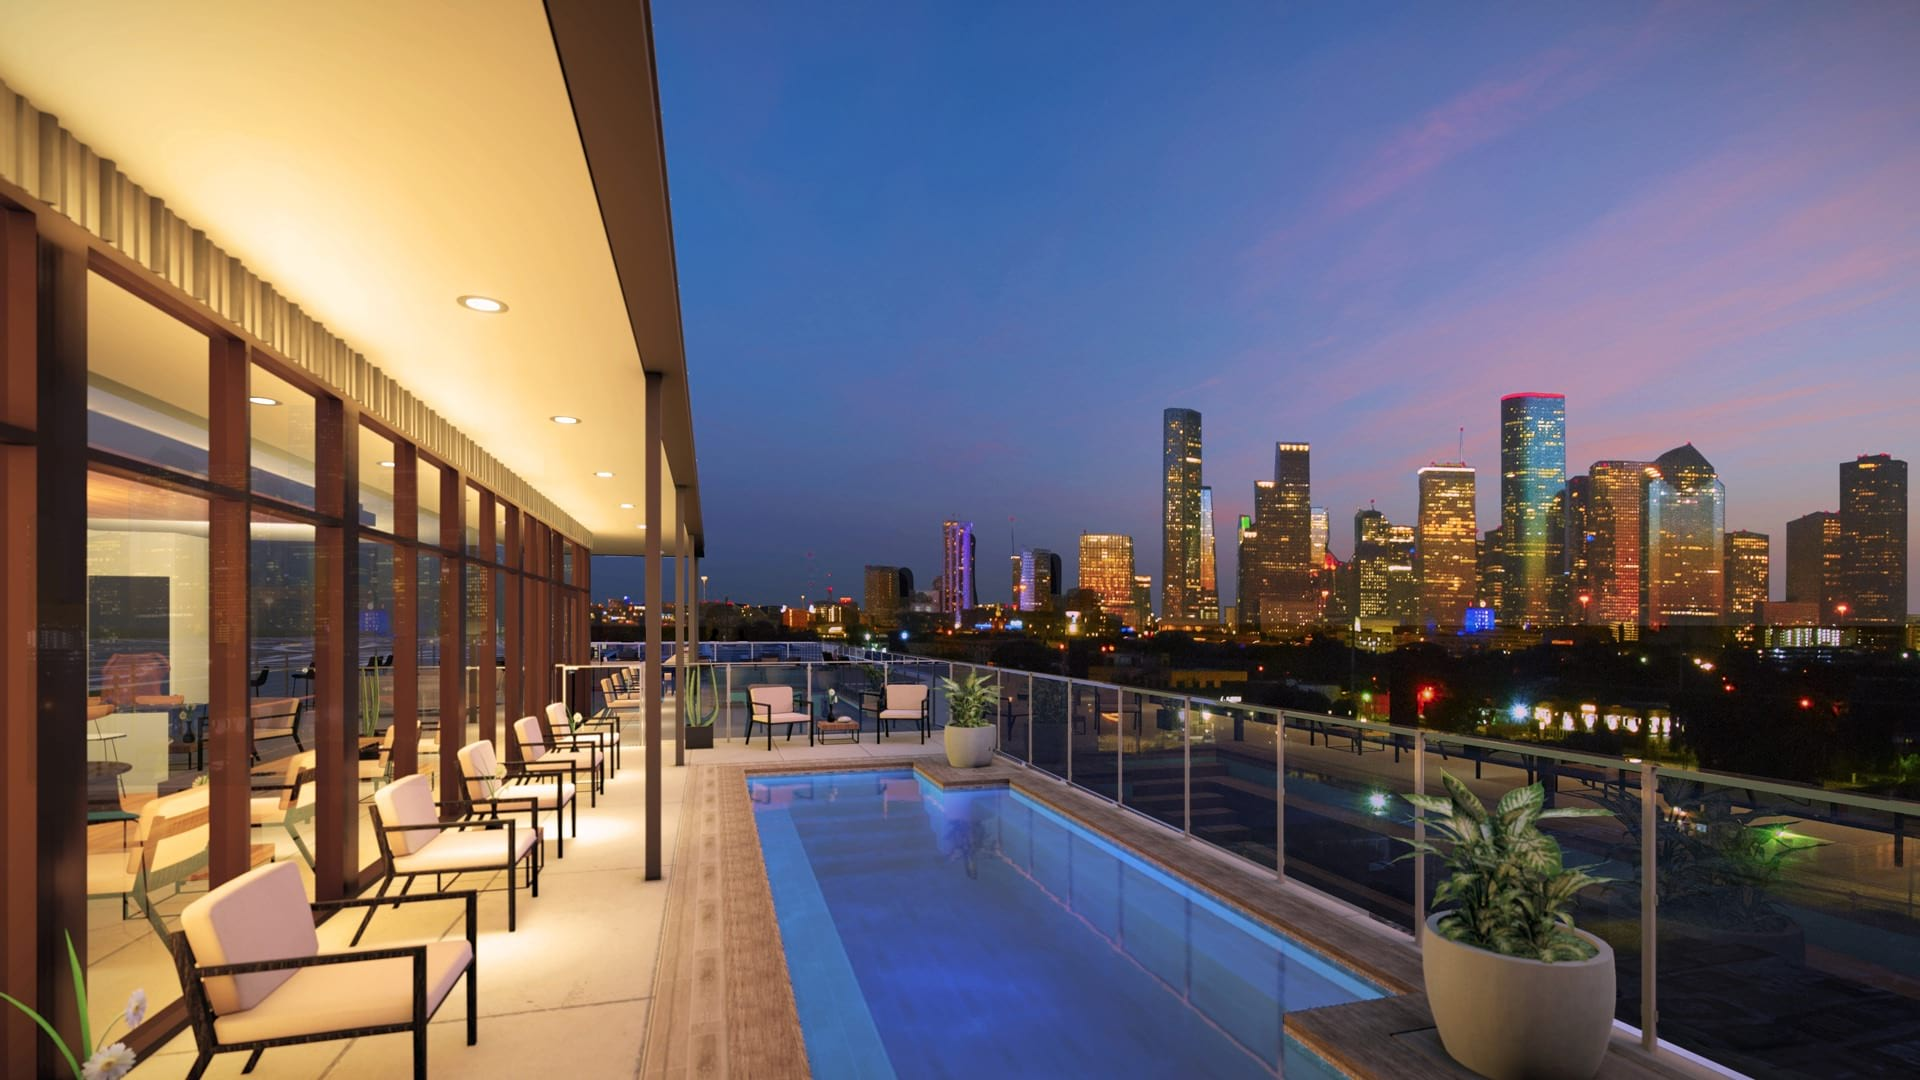 Sky deck pool with expansive view of Houston